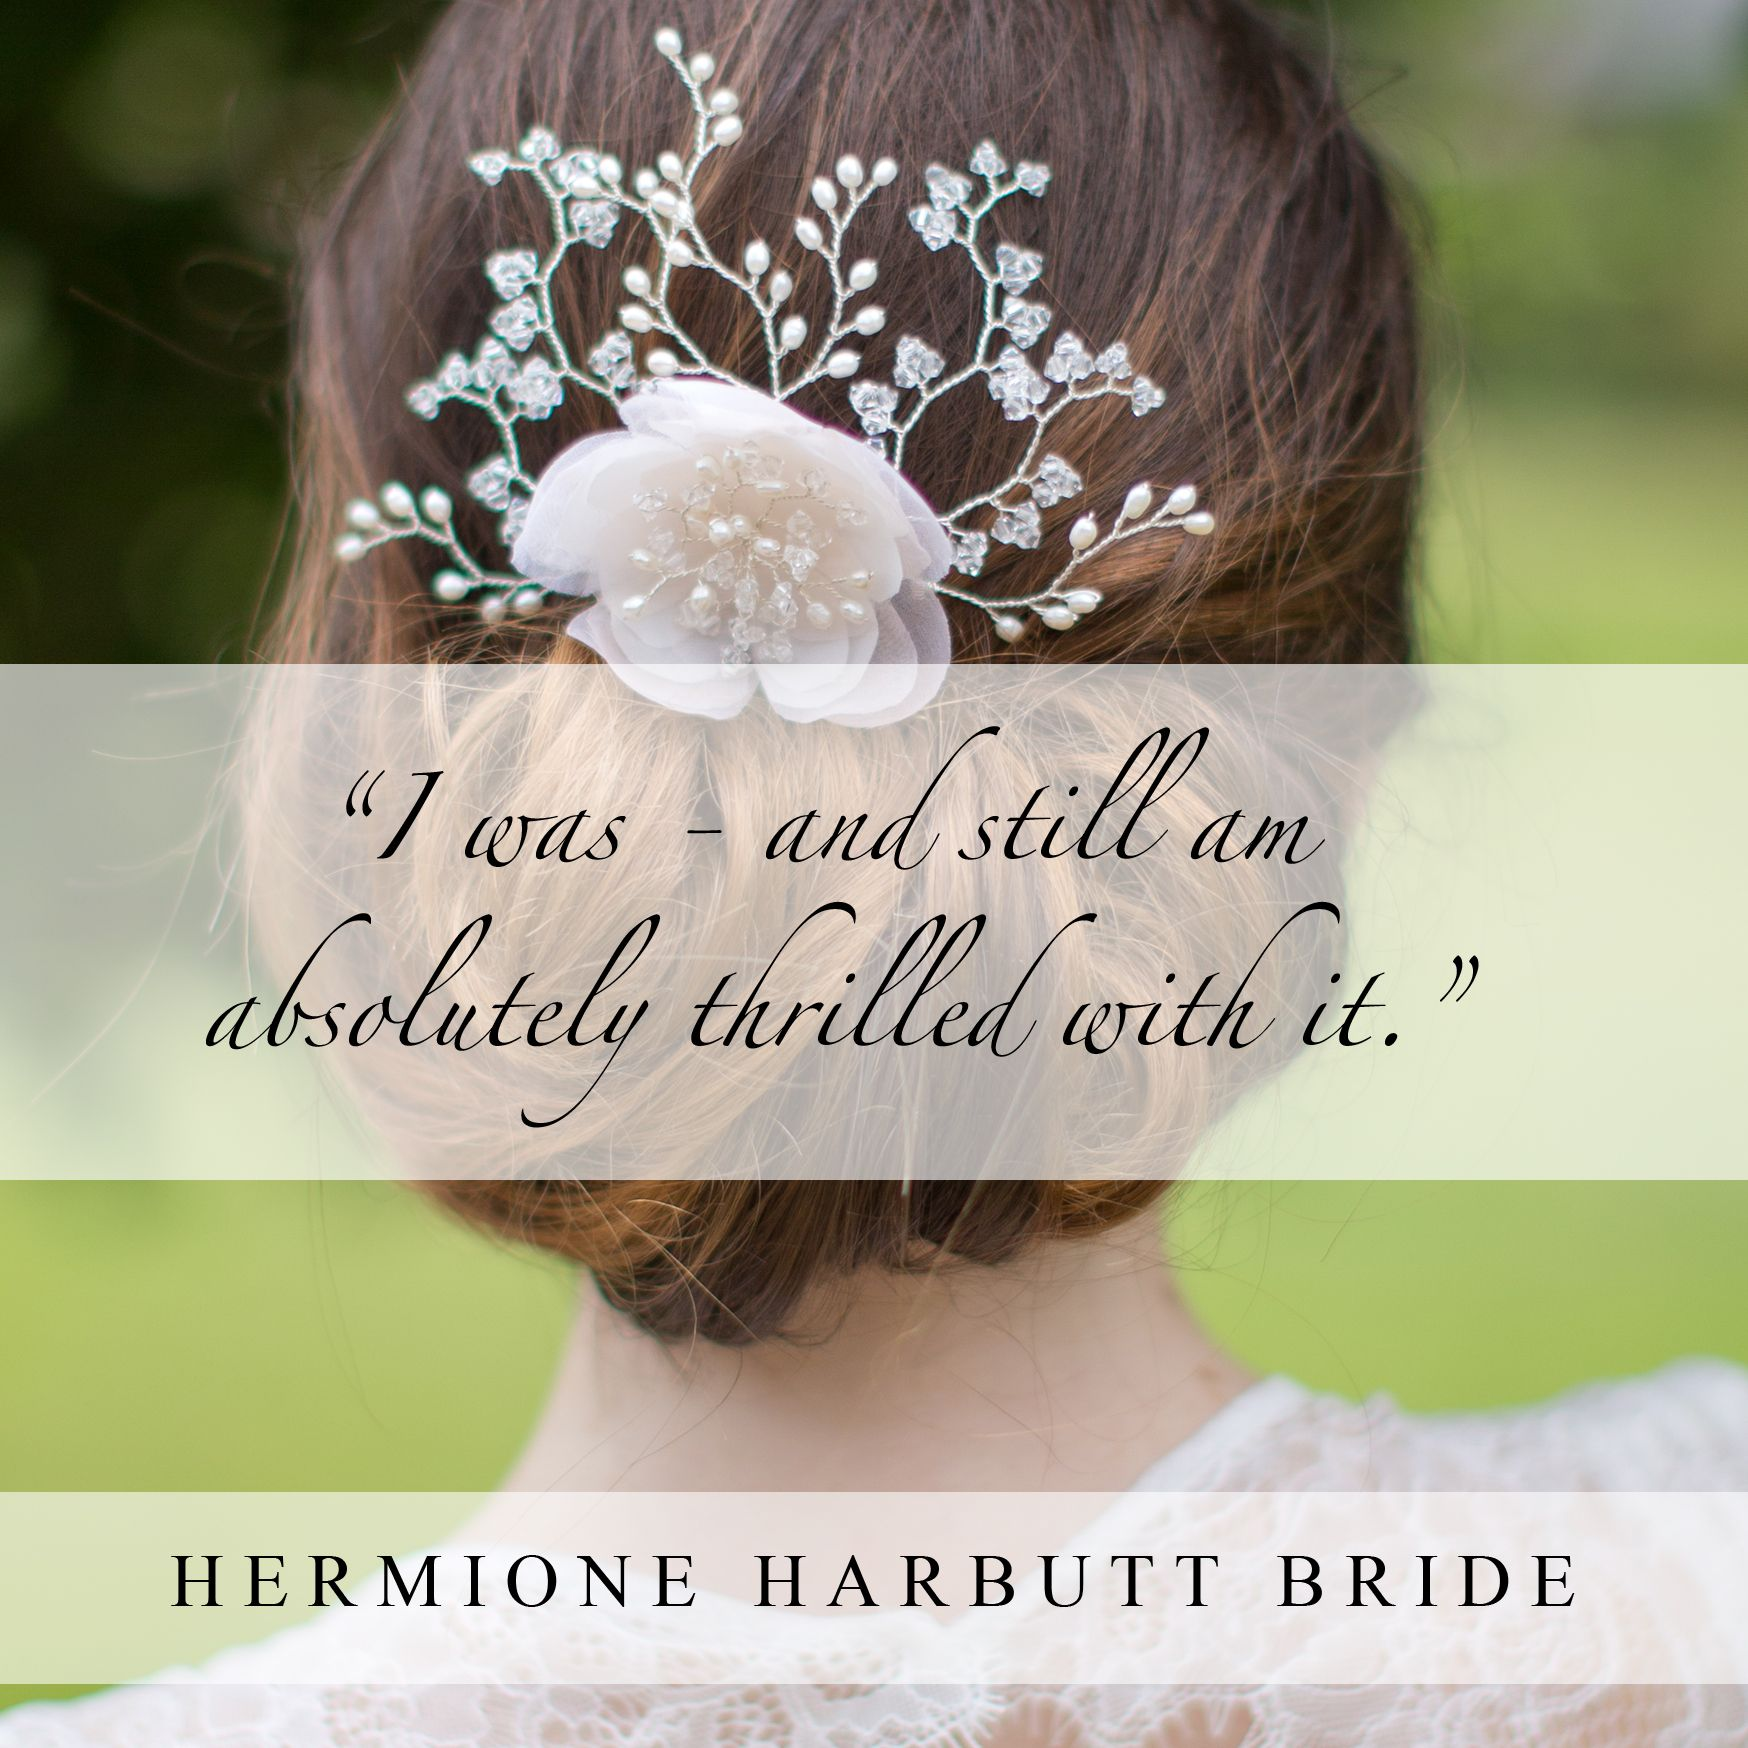 hermione harbutt | quote from a hermione harbutt bride